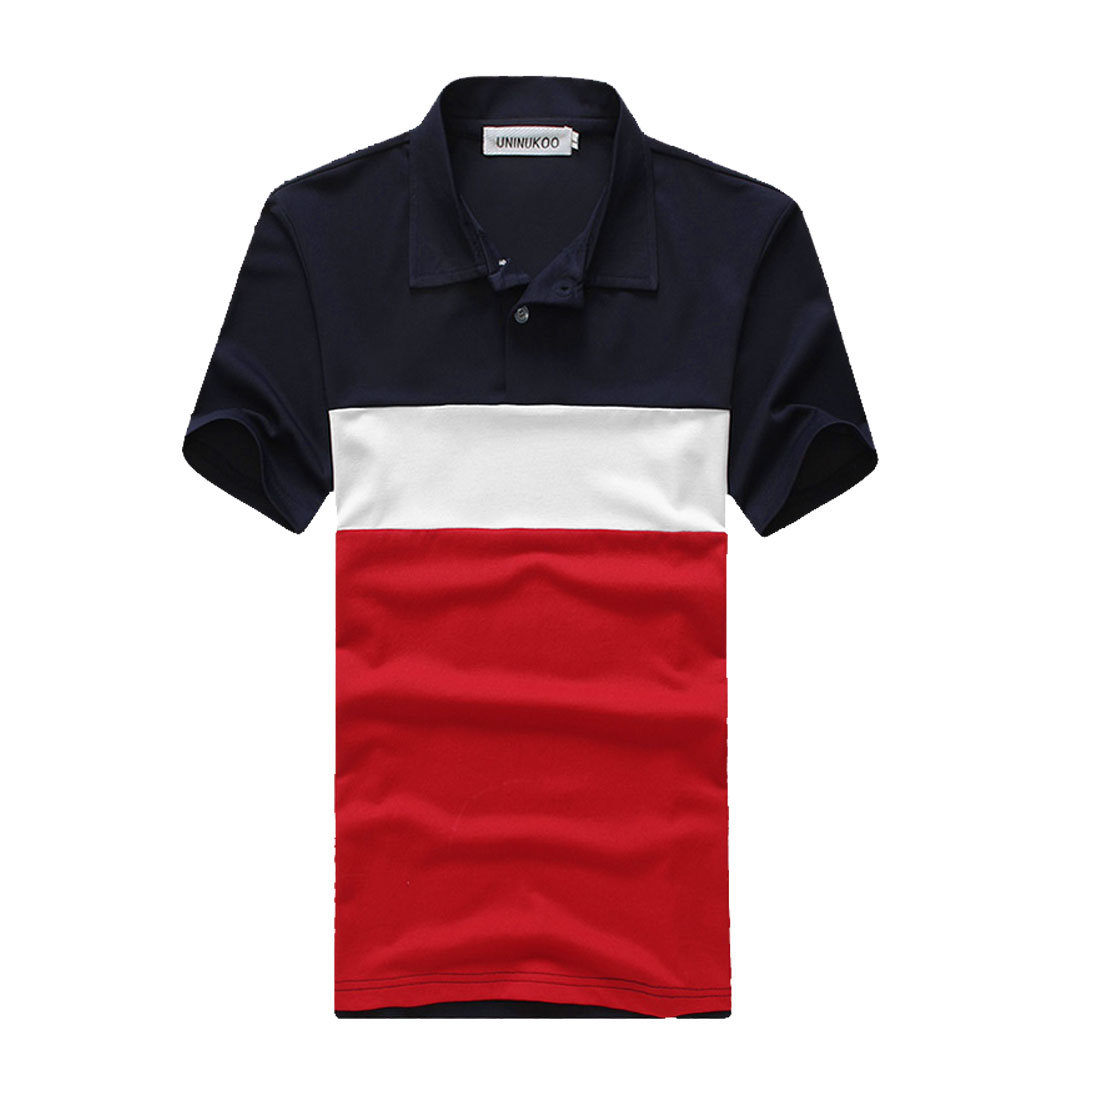 Mens Short Sleeve Button Up Front Contrast Color Dark Blue Red Polo Shirt S